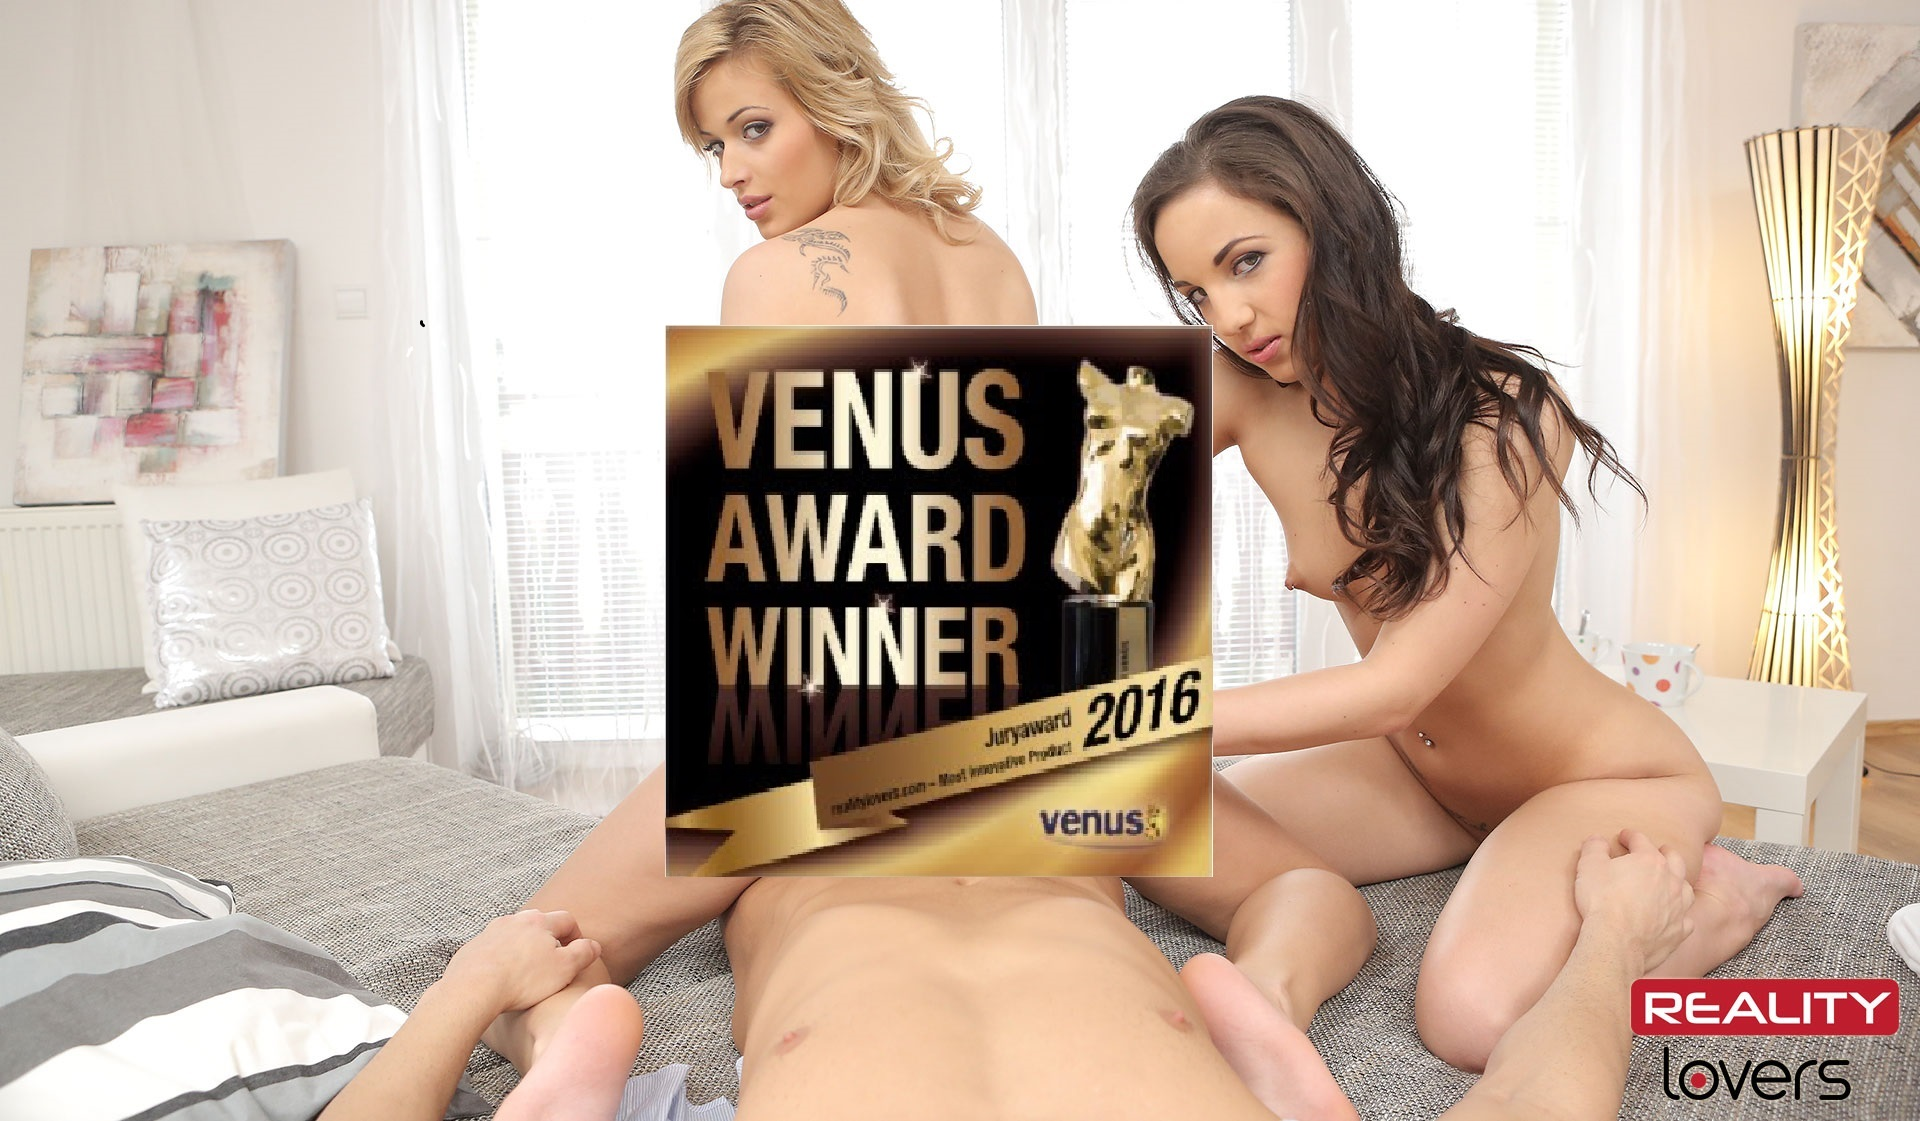 VR porn, Best VR porn, best VR porn videos, vr sex